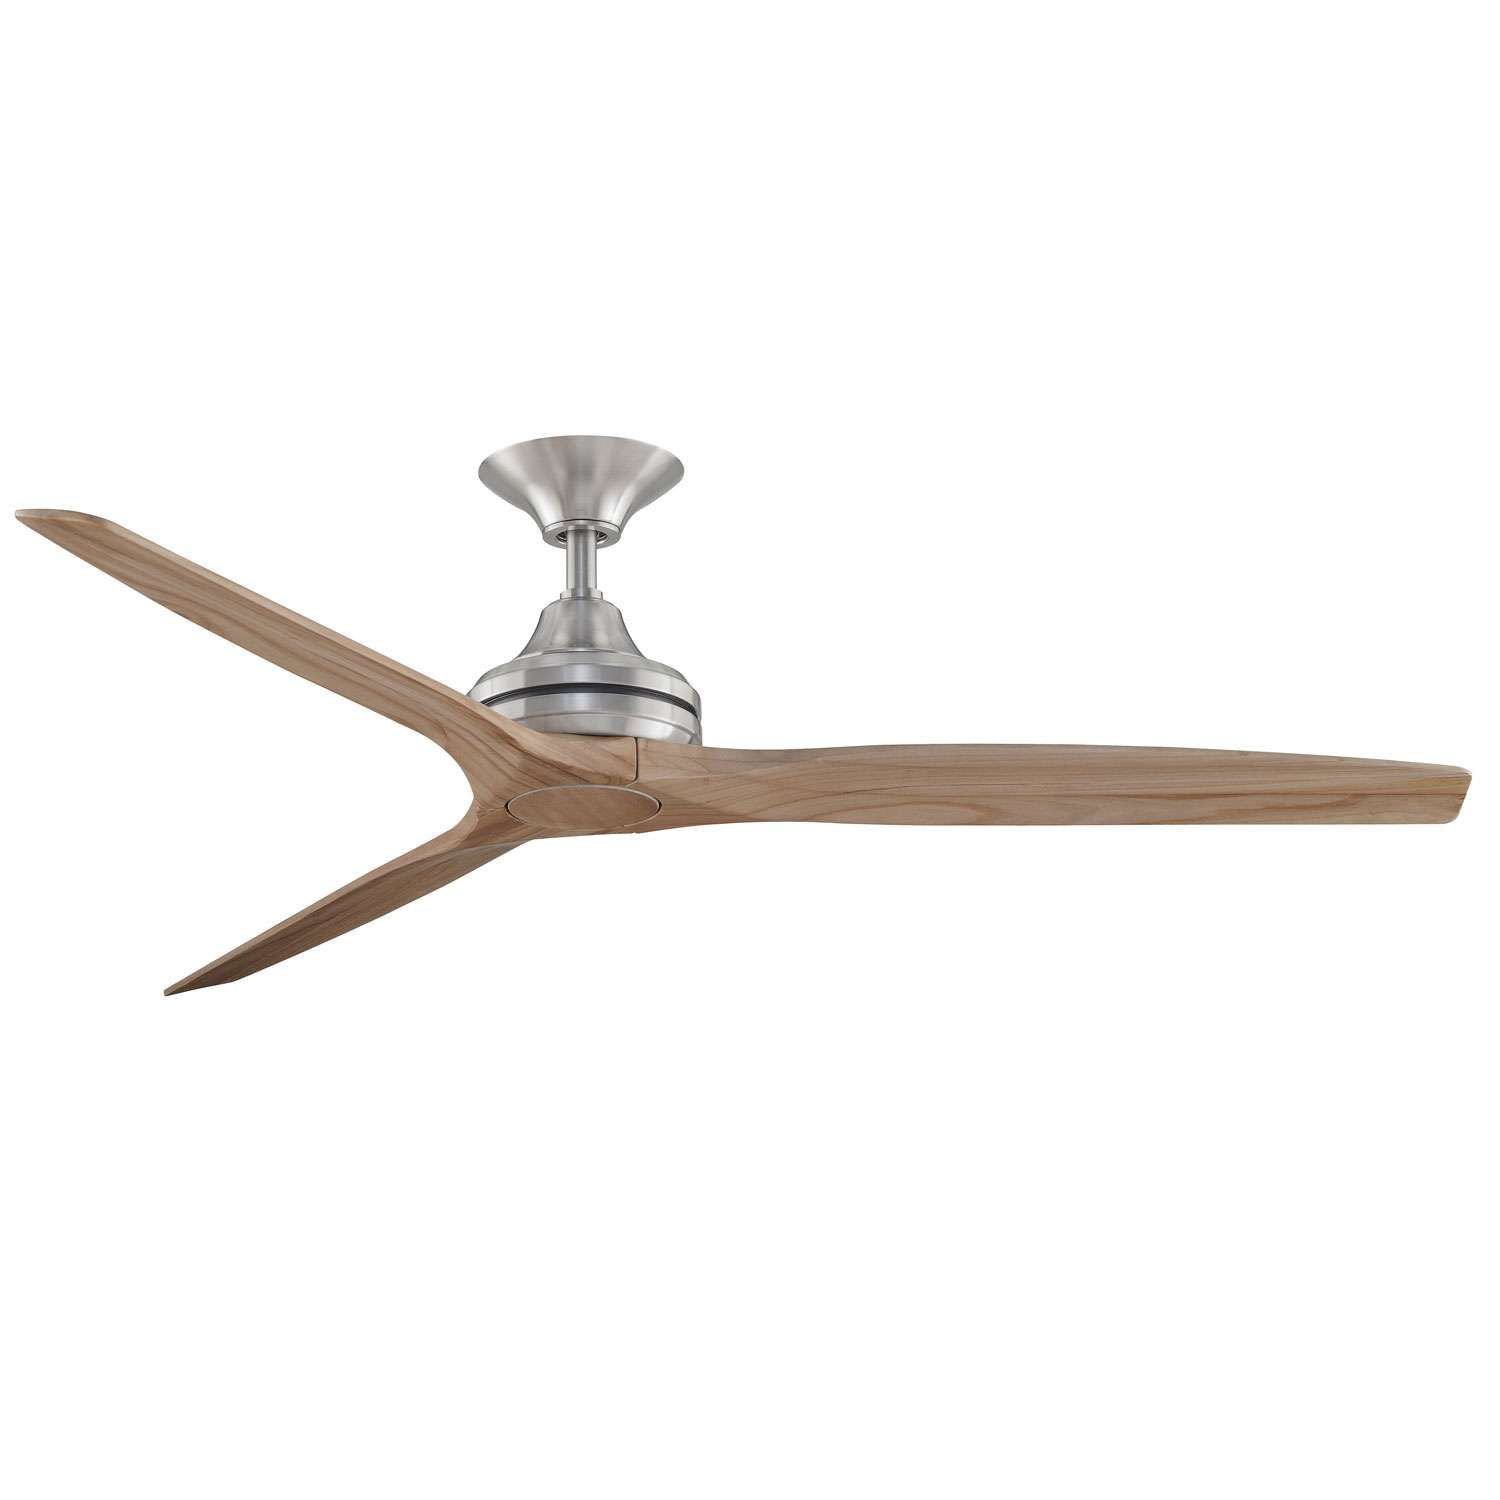 Brushed Nickel Finish Natural Wood Blades No Light Kit Wood Ceiling Fans Ceiling Fan Ceiling Fan Shades